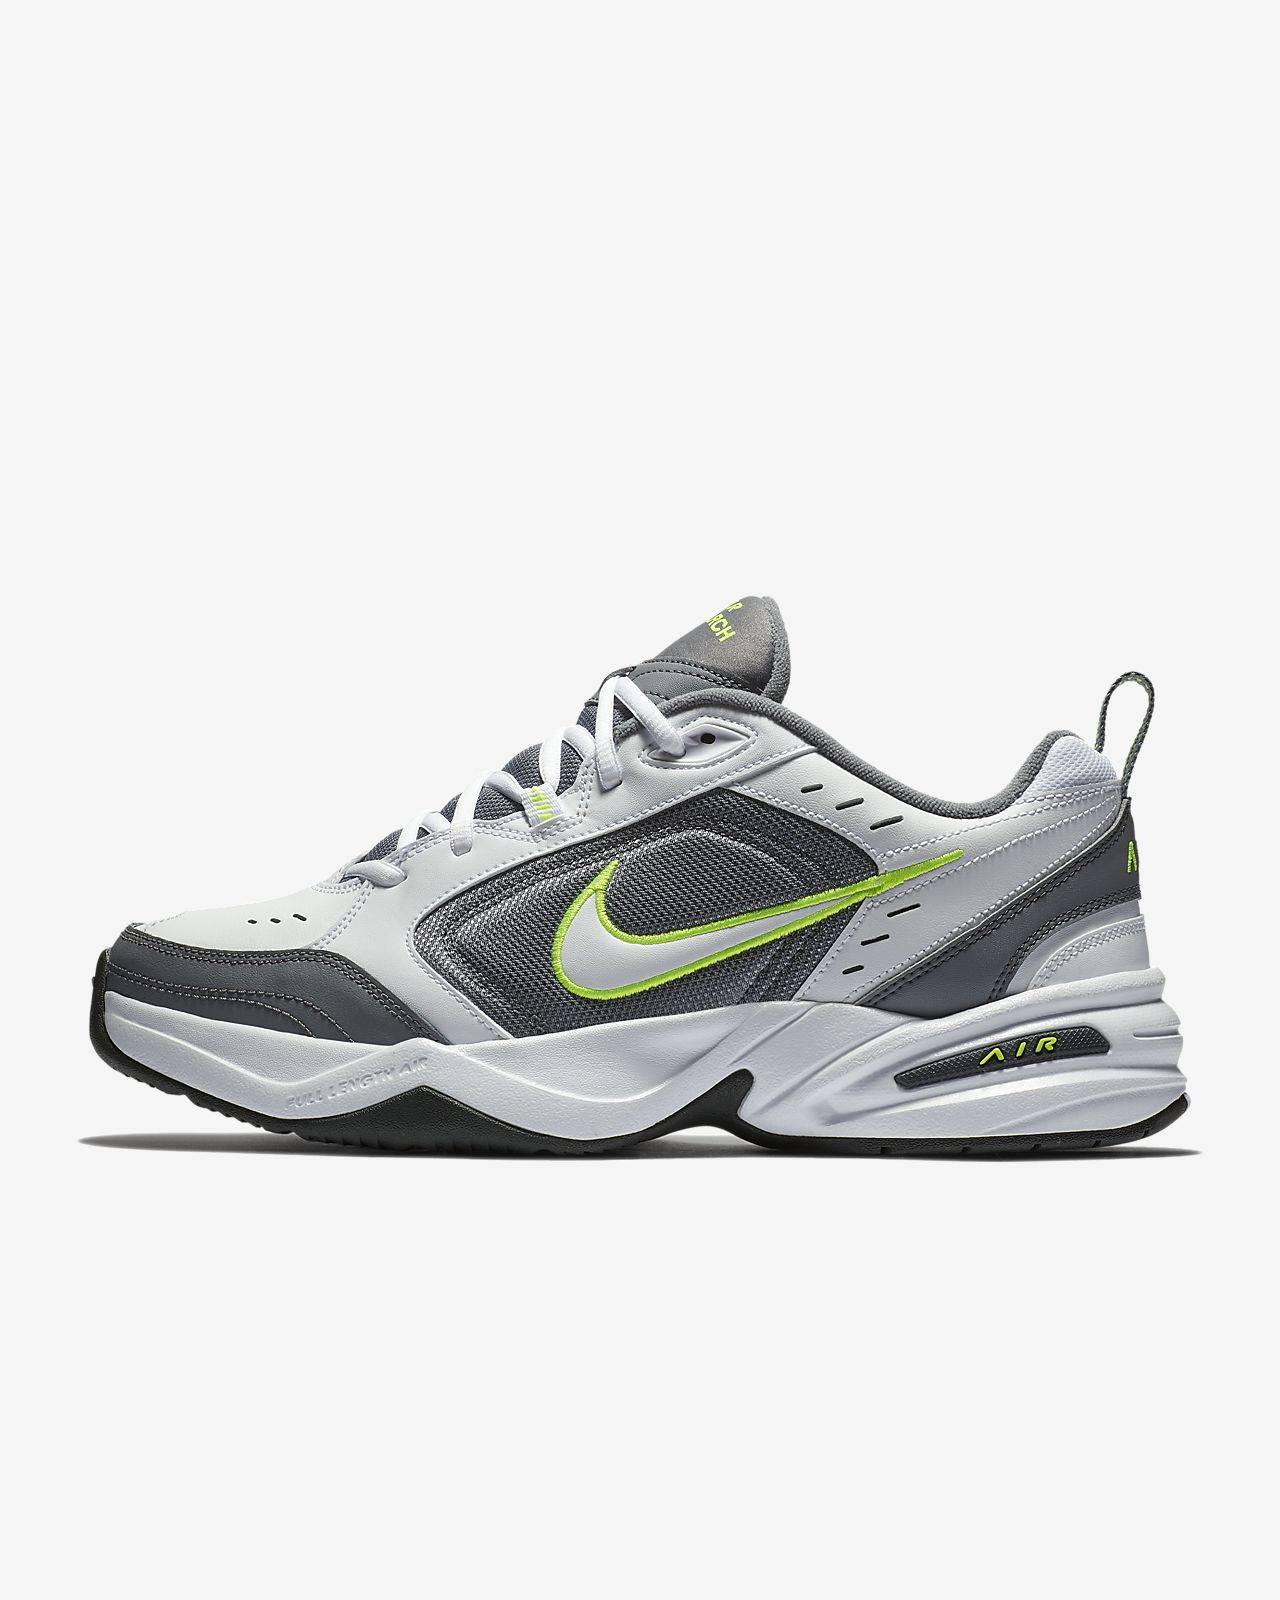 newest 9d85d aee93 ... Nike Air Monarch IV Zapatillas de lifestyle y para el gimnasio